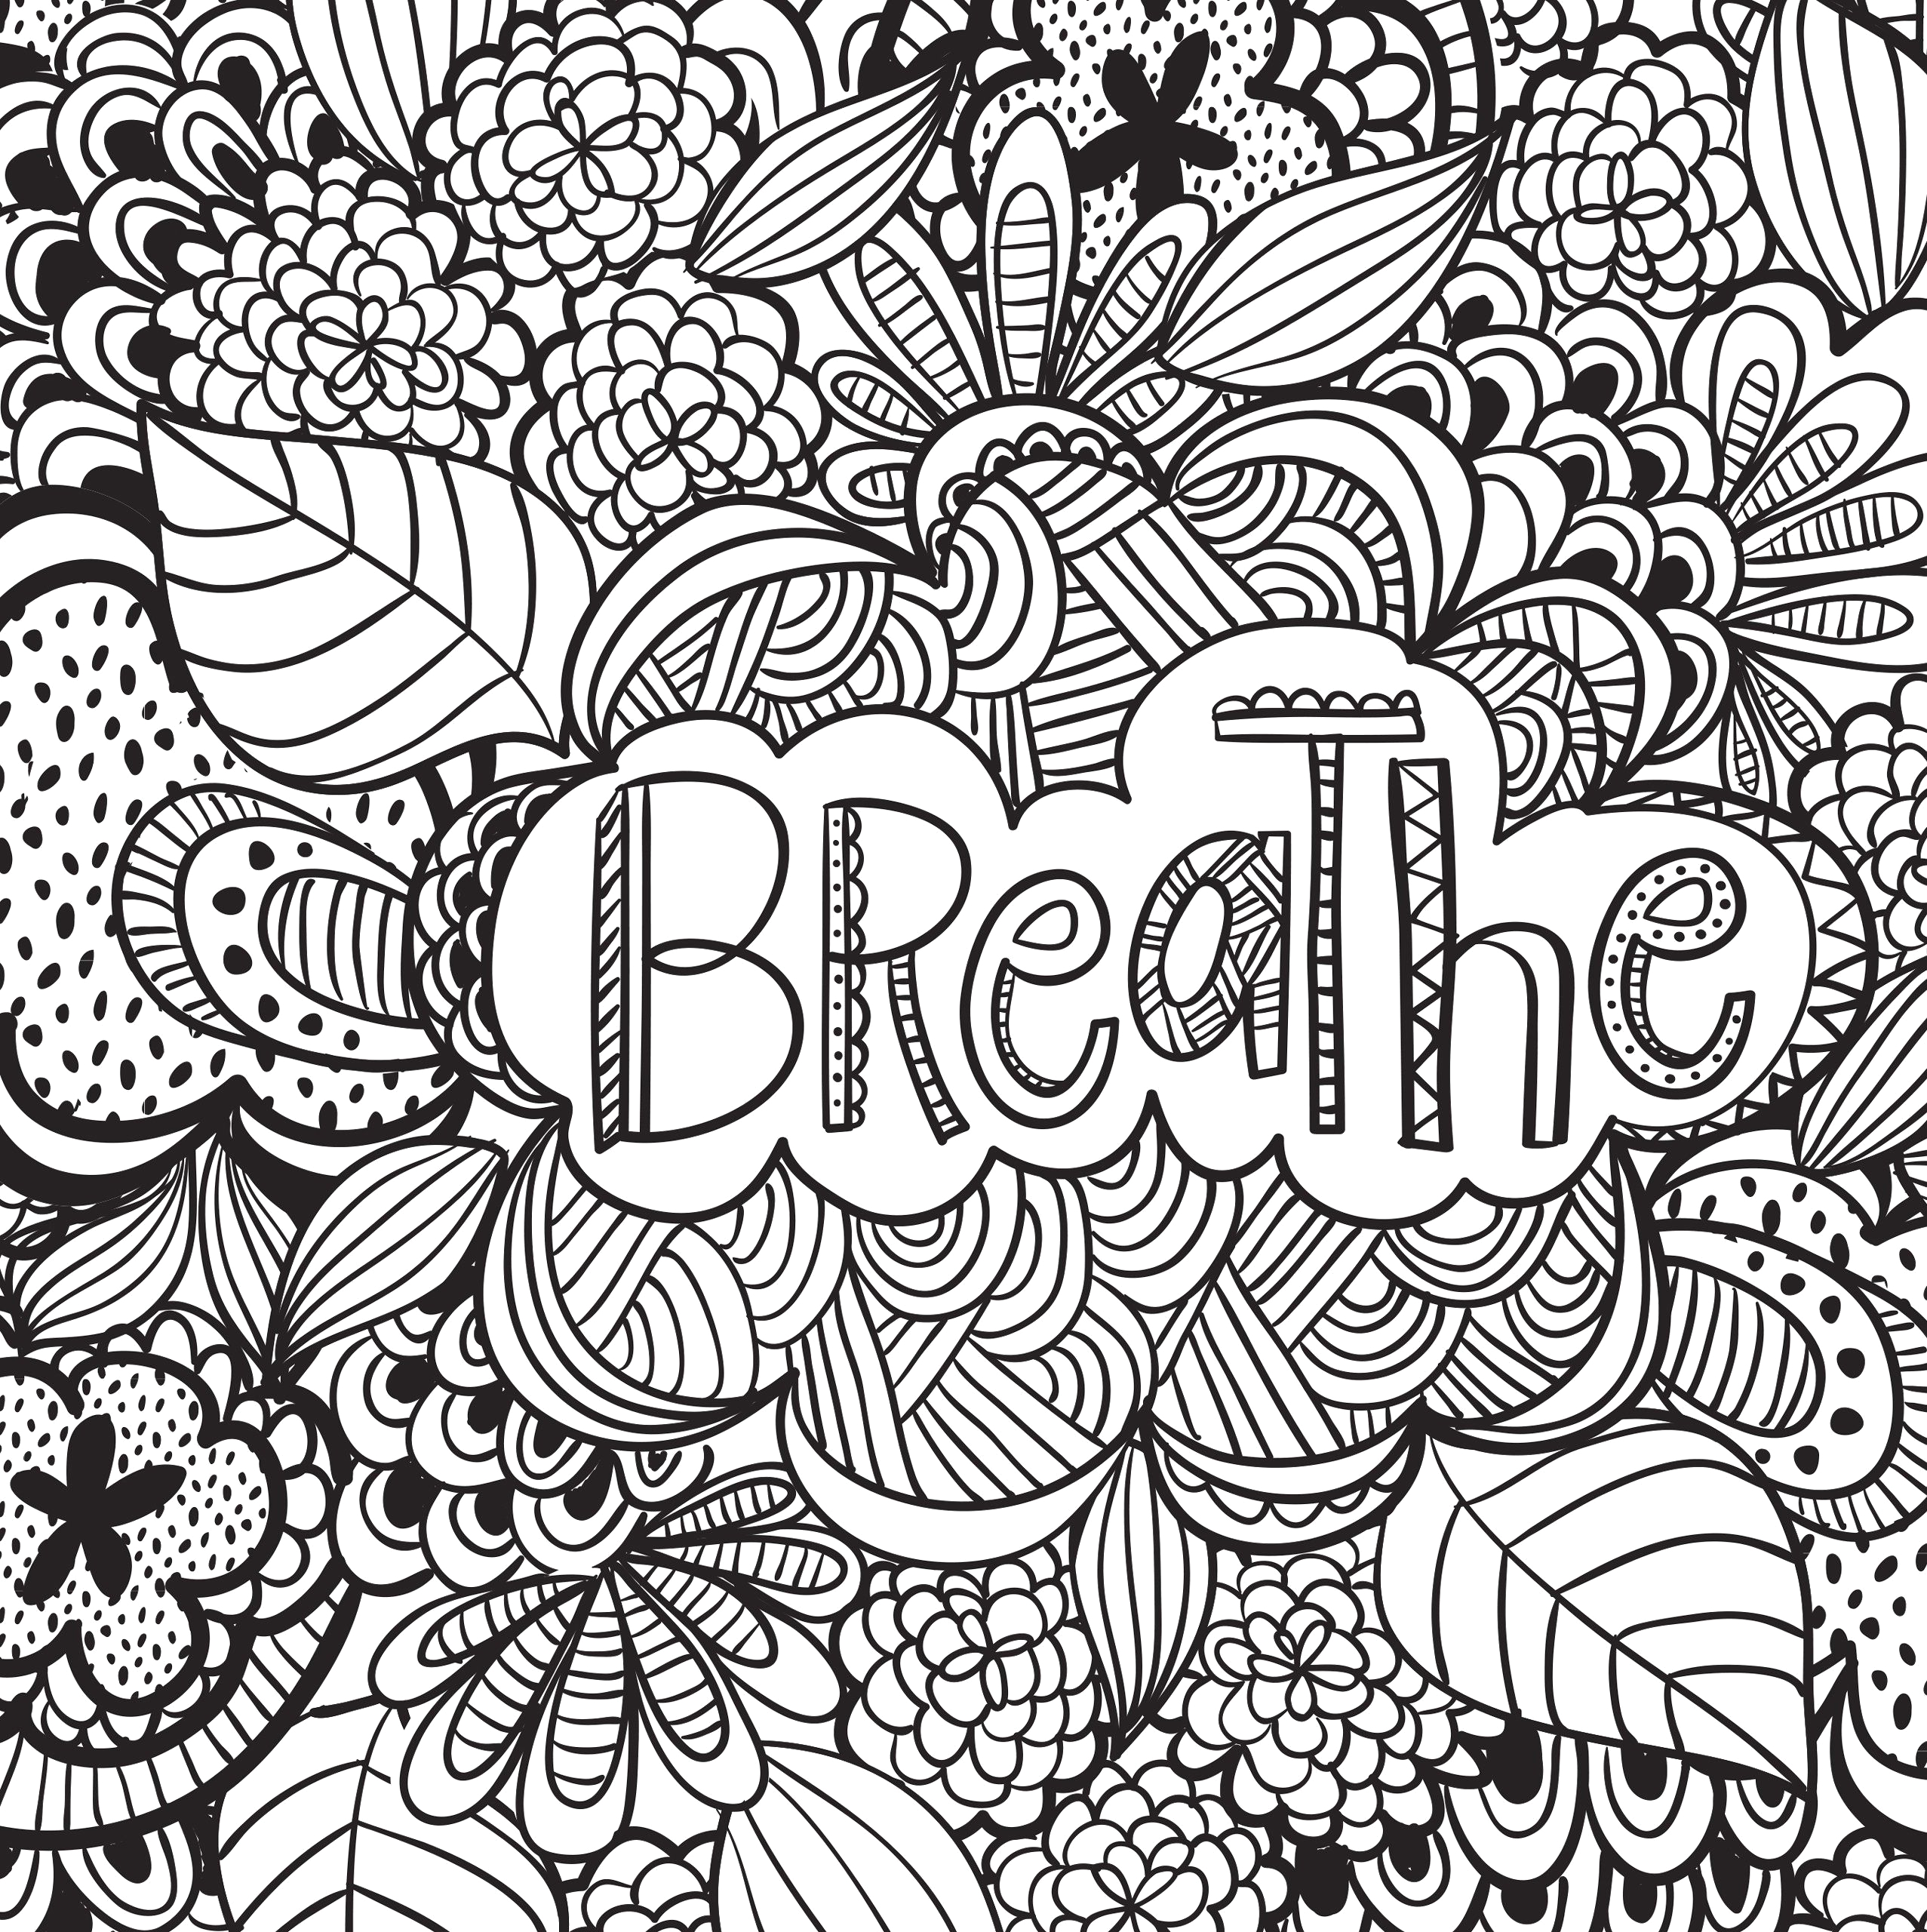 Stress Relief Printable Coloring Pages for Adults Stress Relief Coloring Pages at Getdrawings